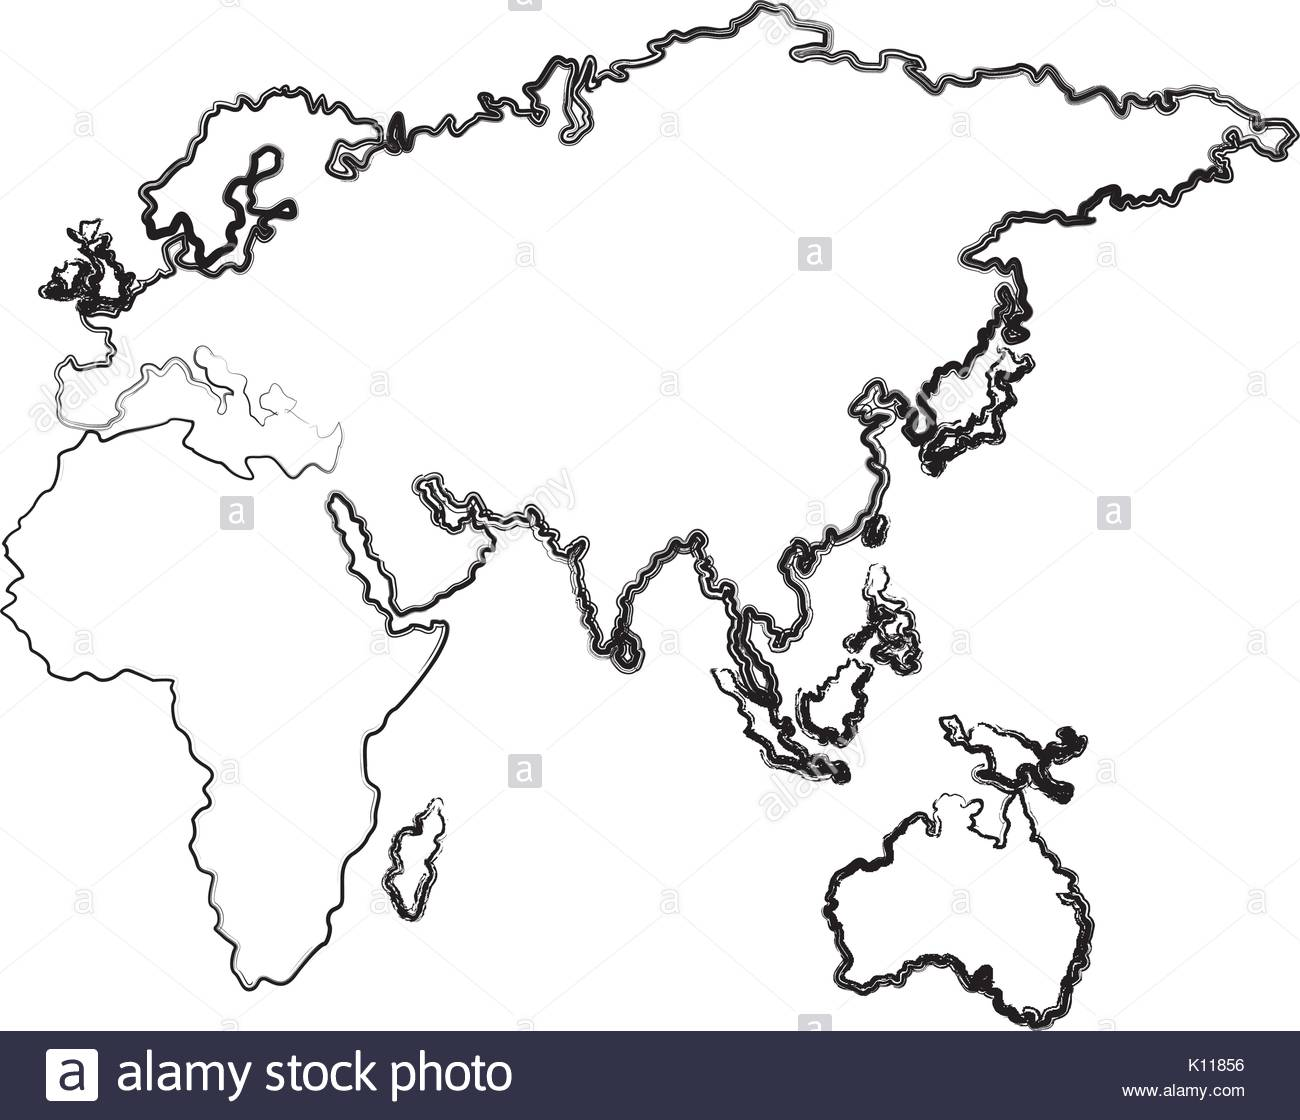 1300x1120 Map Of Europe Africa And Asia Country Stock Vector Art